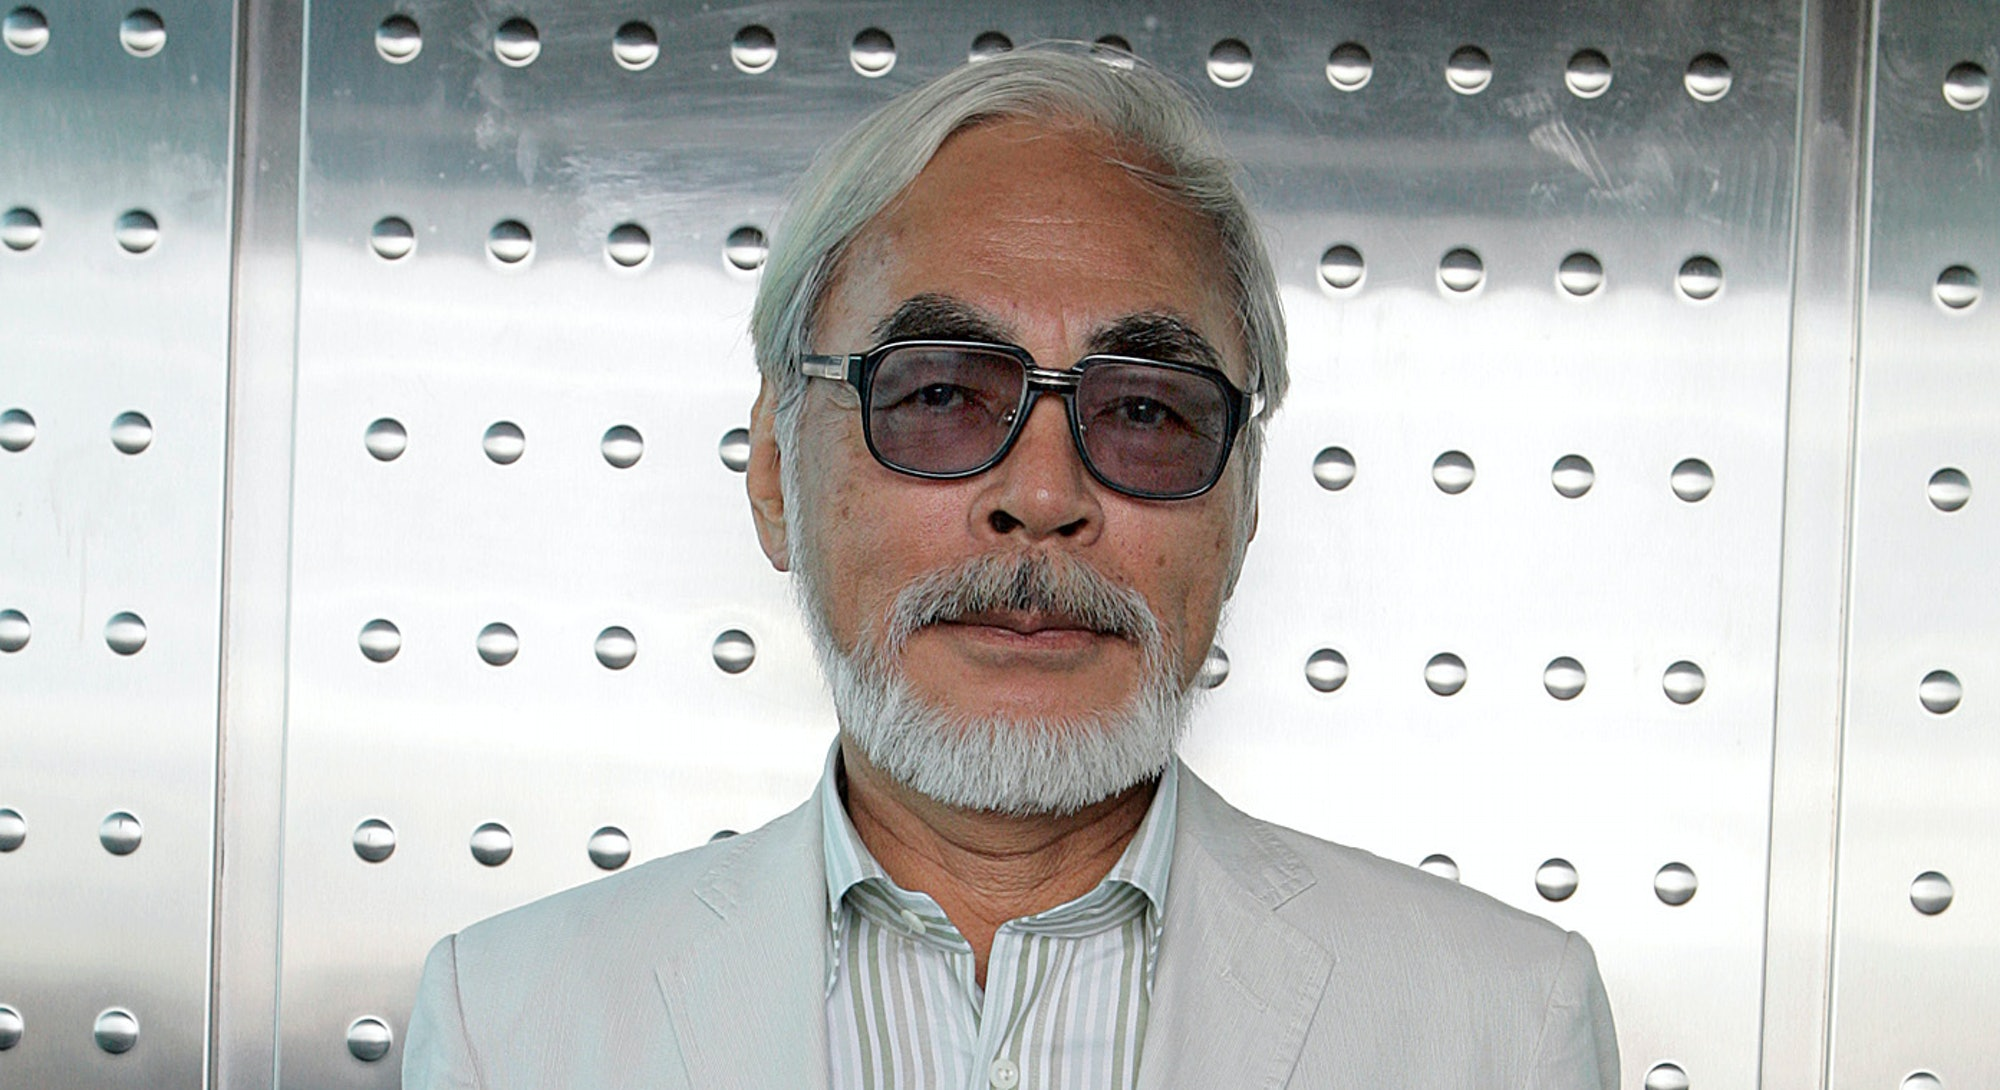 Hayao Miyazaki photographed at Comic–Con International in san Diego, July 24, 2009. A look at the wo...